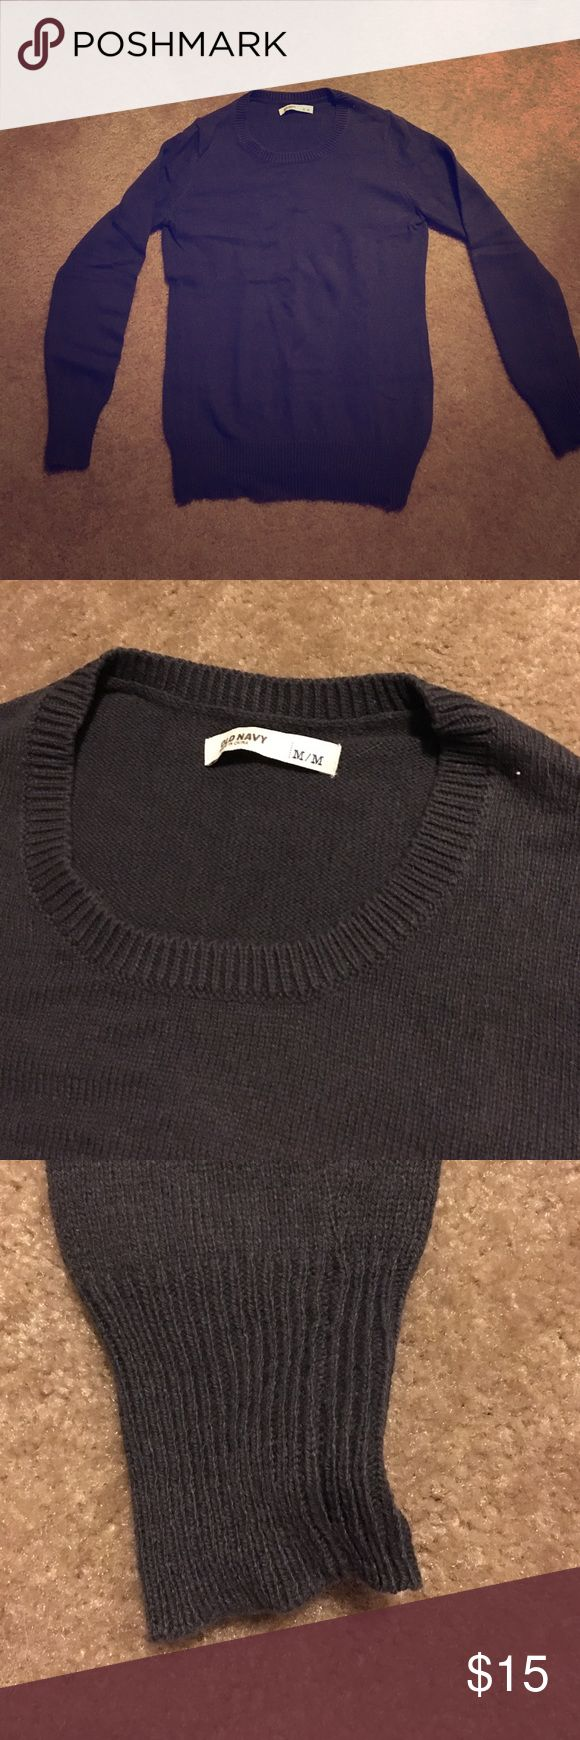 Basic dark gray old navy sweater NWOT and never worn. No trades and all sales are final. Old Navy Sweaters Crew & Scoop Necks